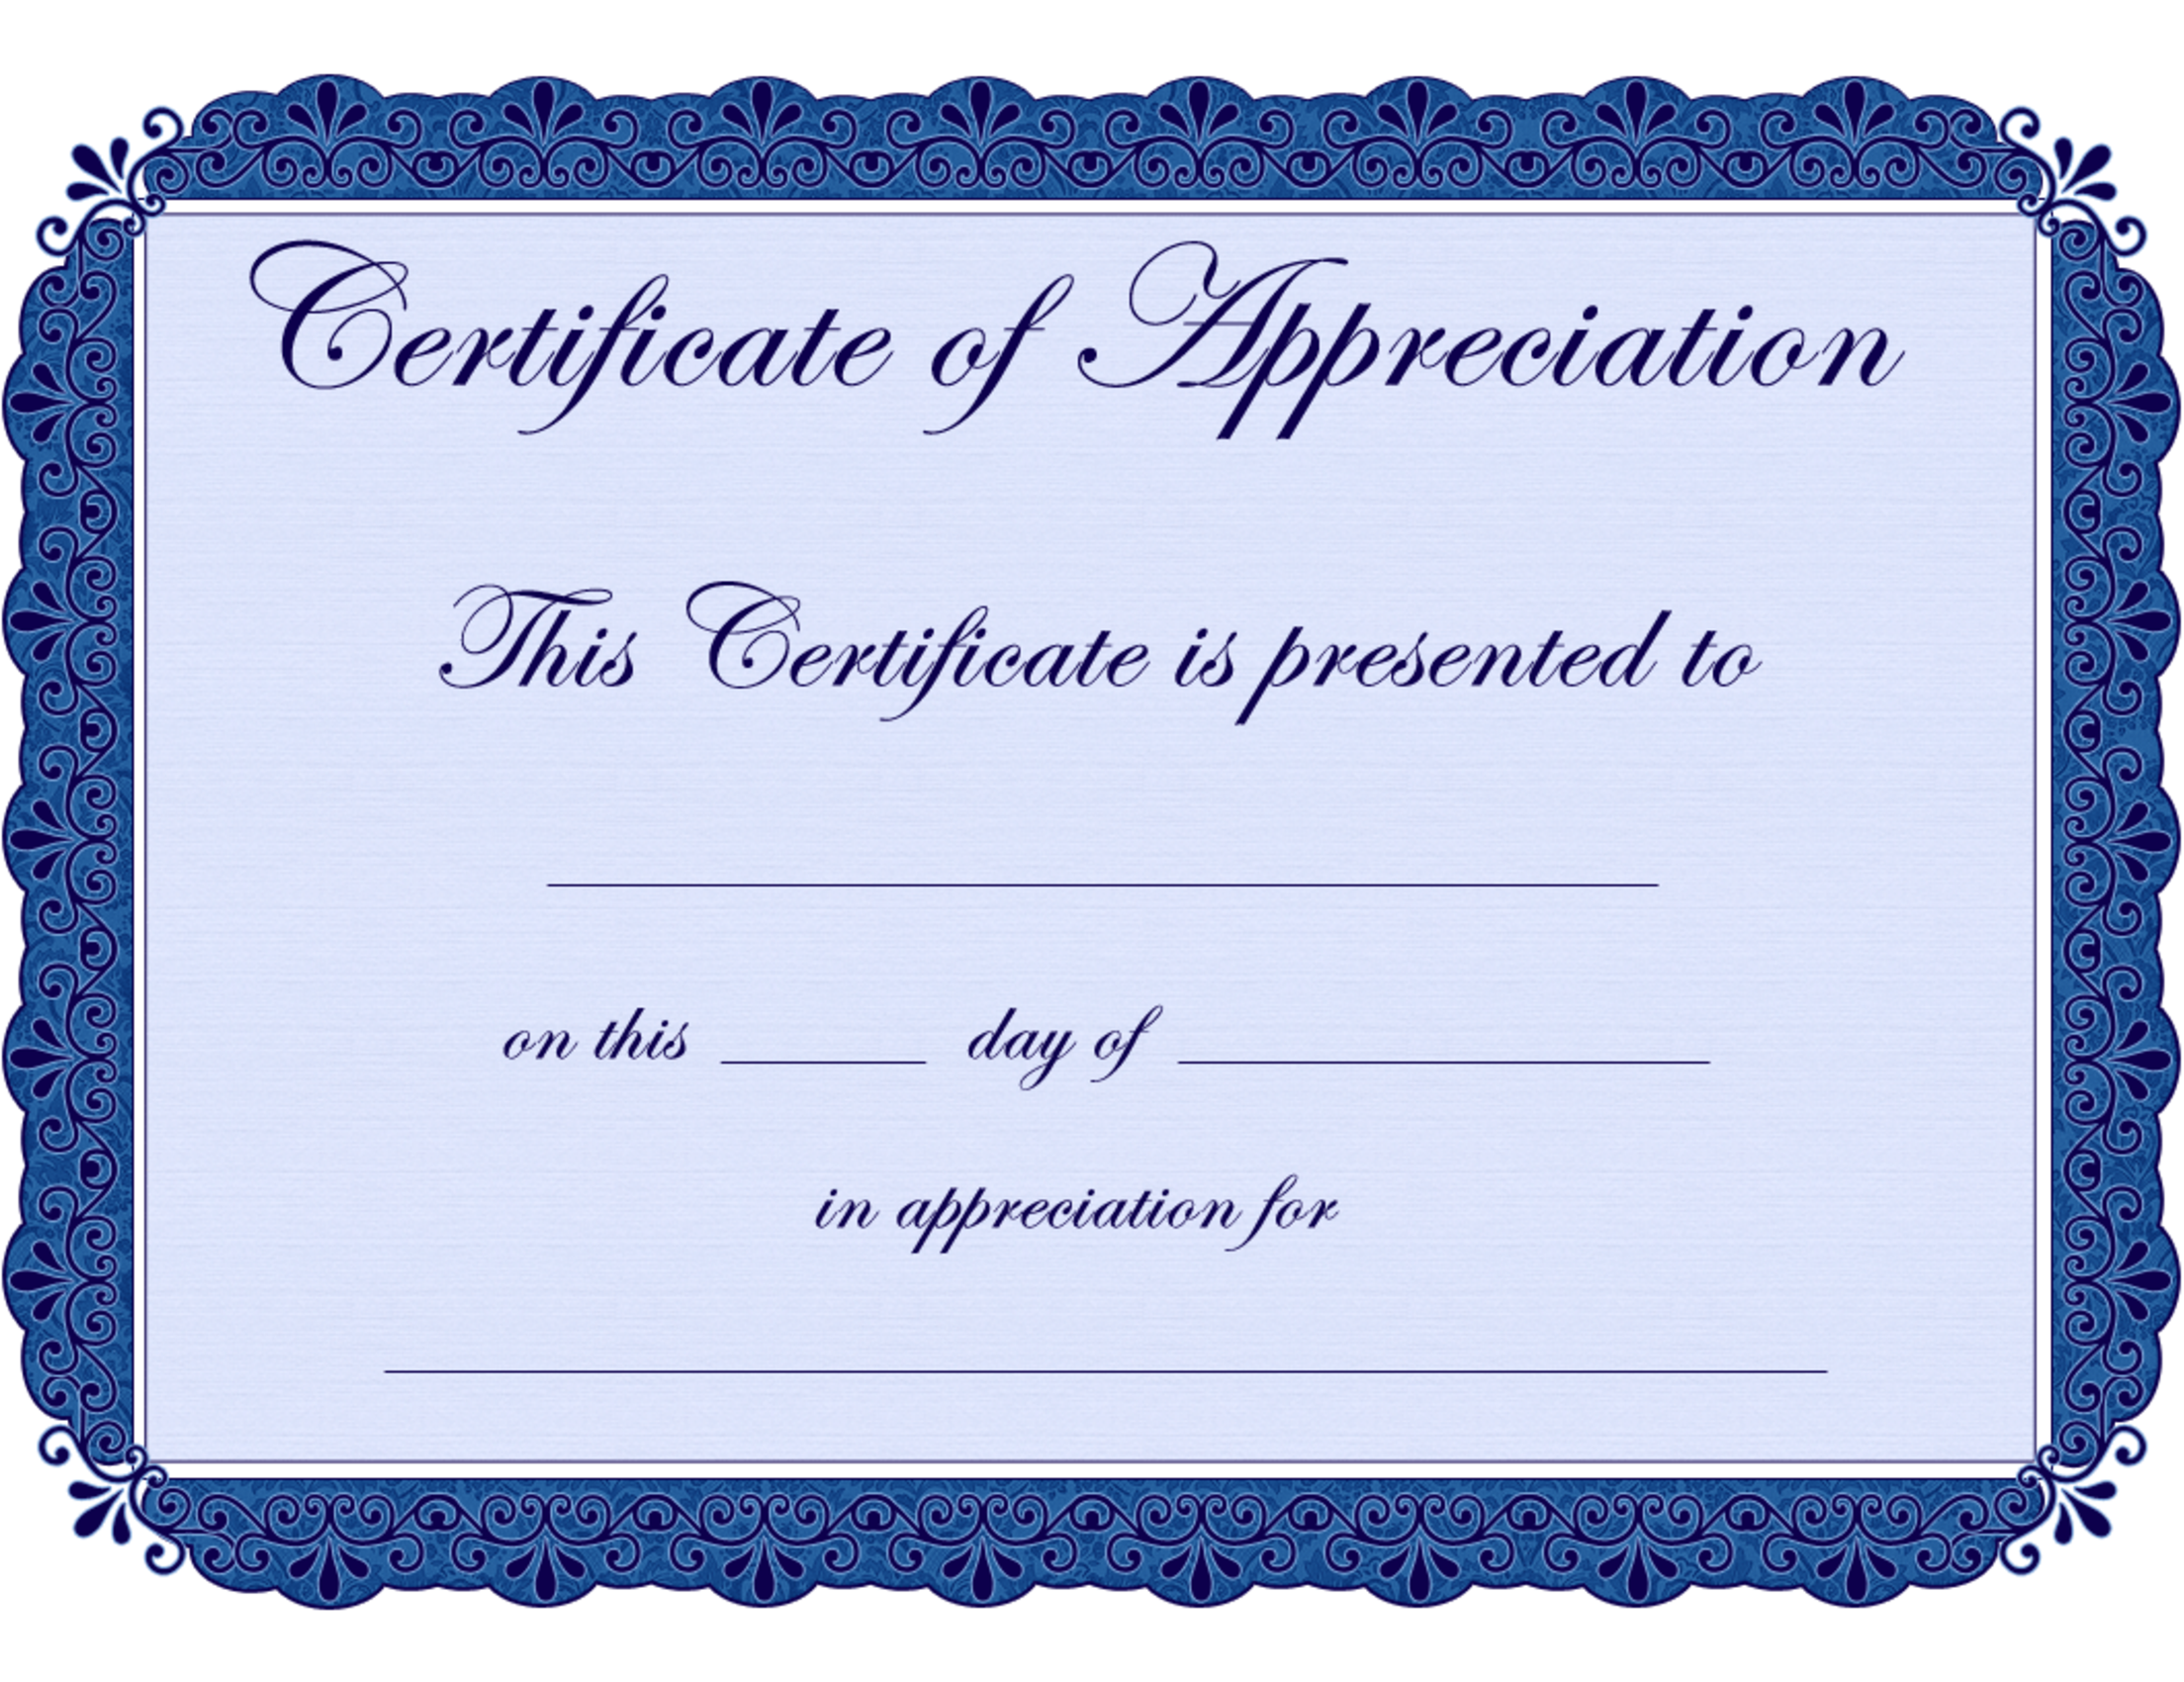 Free Printable Certificates Certificate Of Appreciation Certificate .